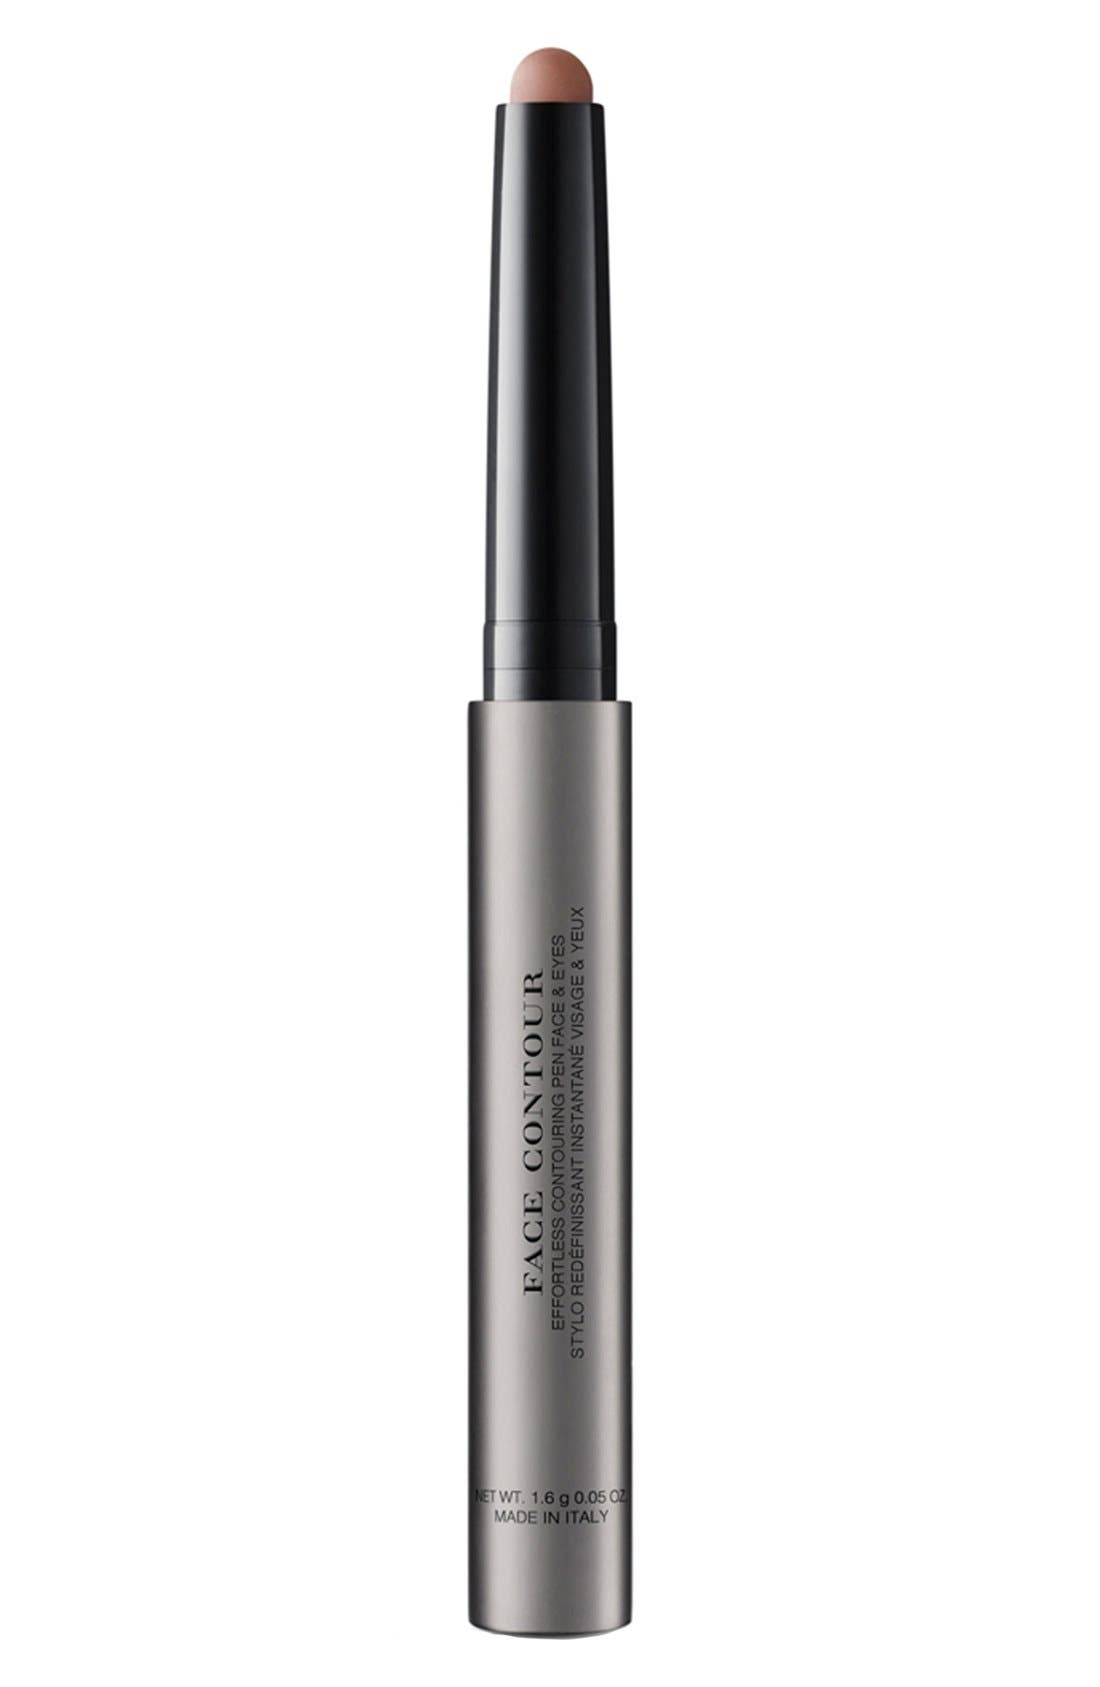 Face Contour Effortless Contouring Pen for Face & Eyes,                             Main thumbnail 1, color,                             NO. 01 MEDIUM